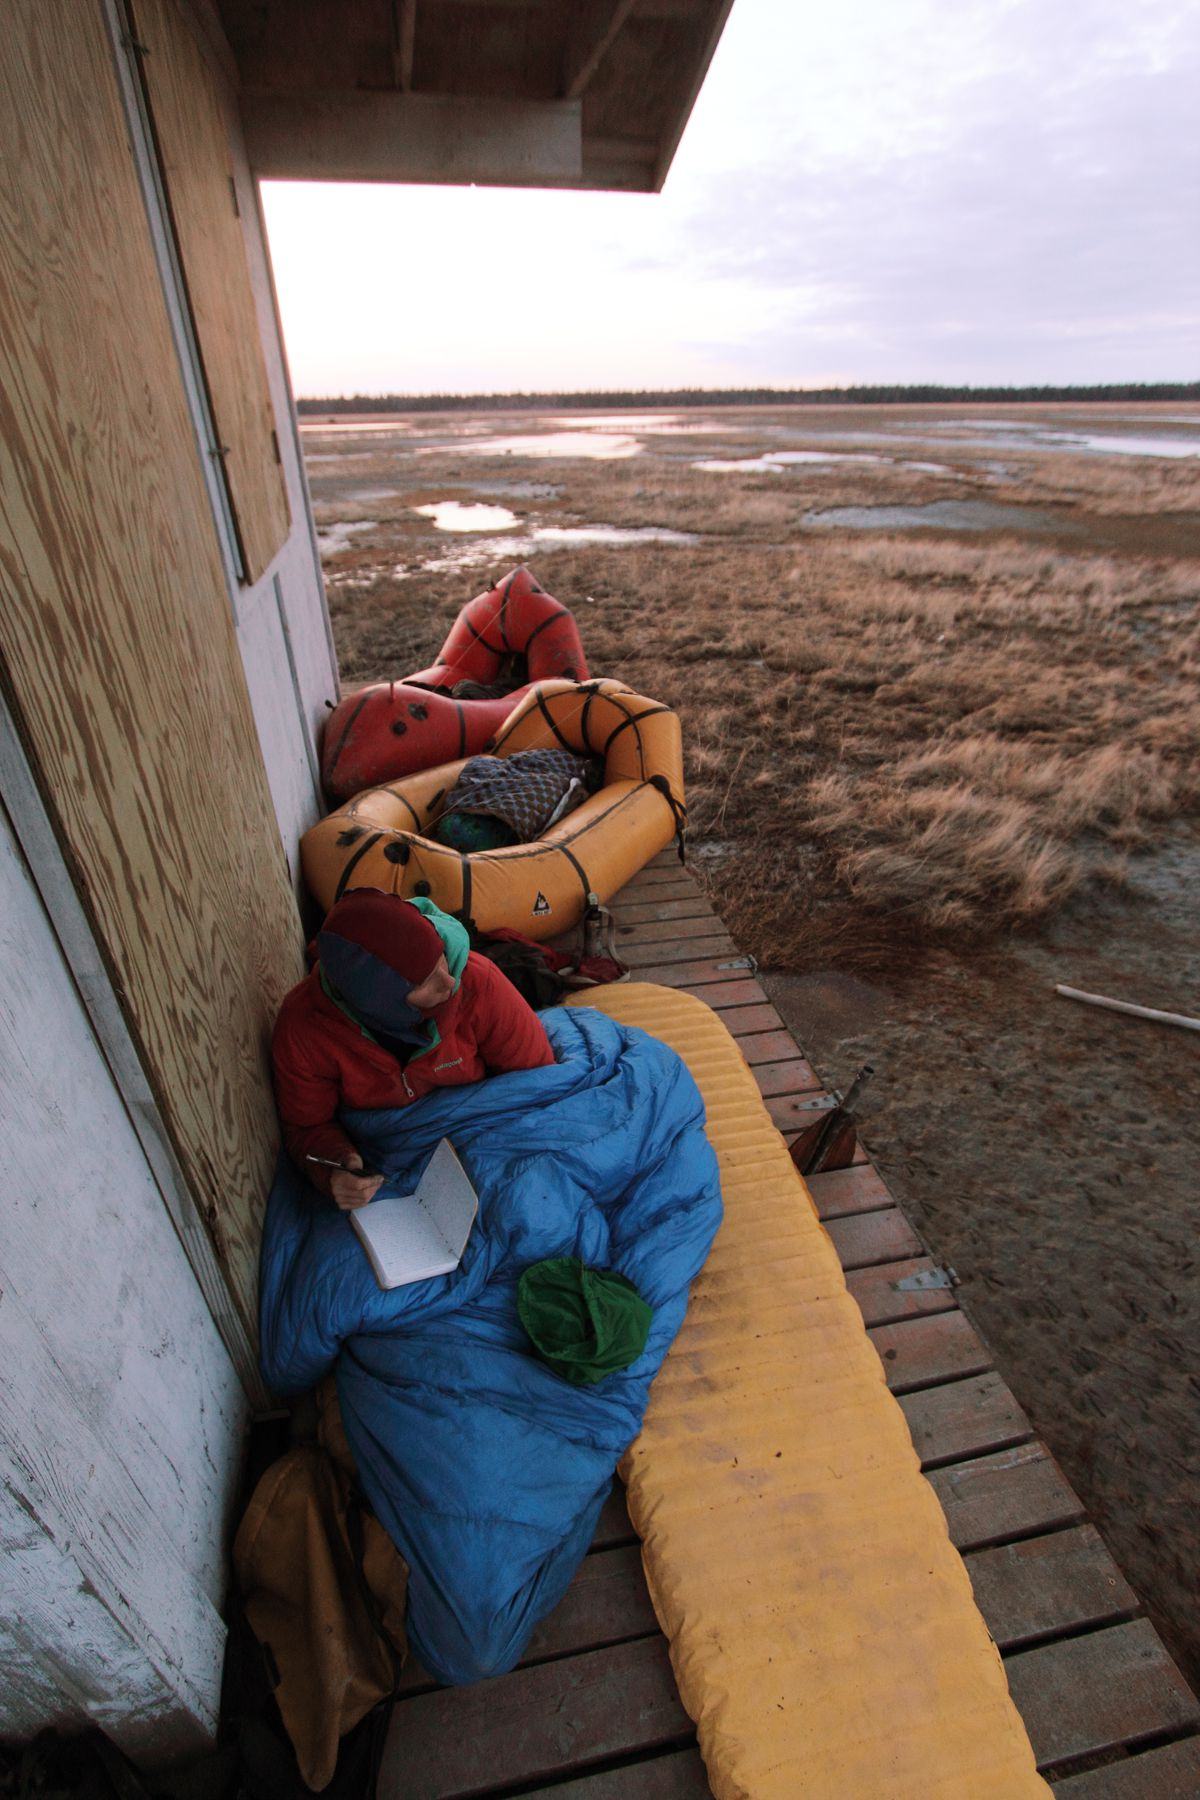 Erin McKittrick writes in her journal from the porch of a duck shack on the Susitna Flats in Southcentral Alaska in May of 2013. The shack was locked, but the trekkers made use of its porch for an unorthodox campsite. (Photo by Ground Truth Trekking)